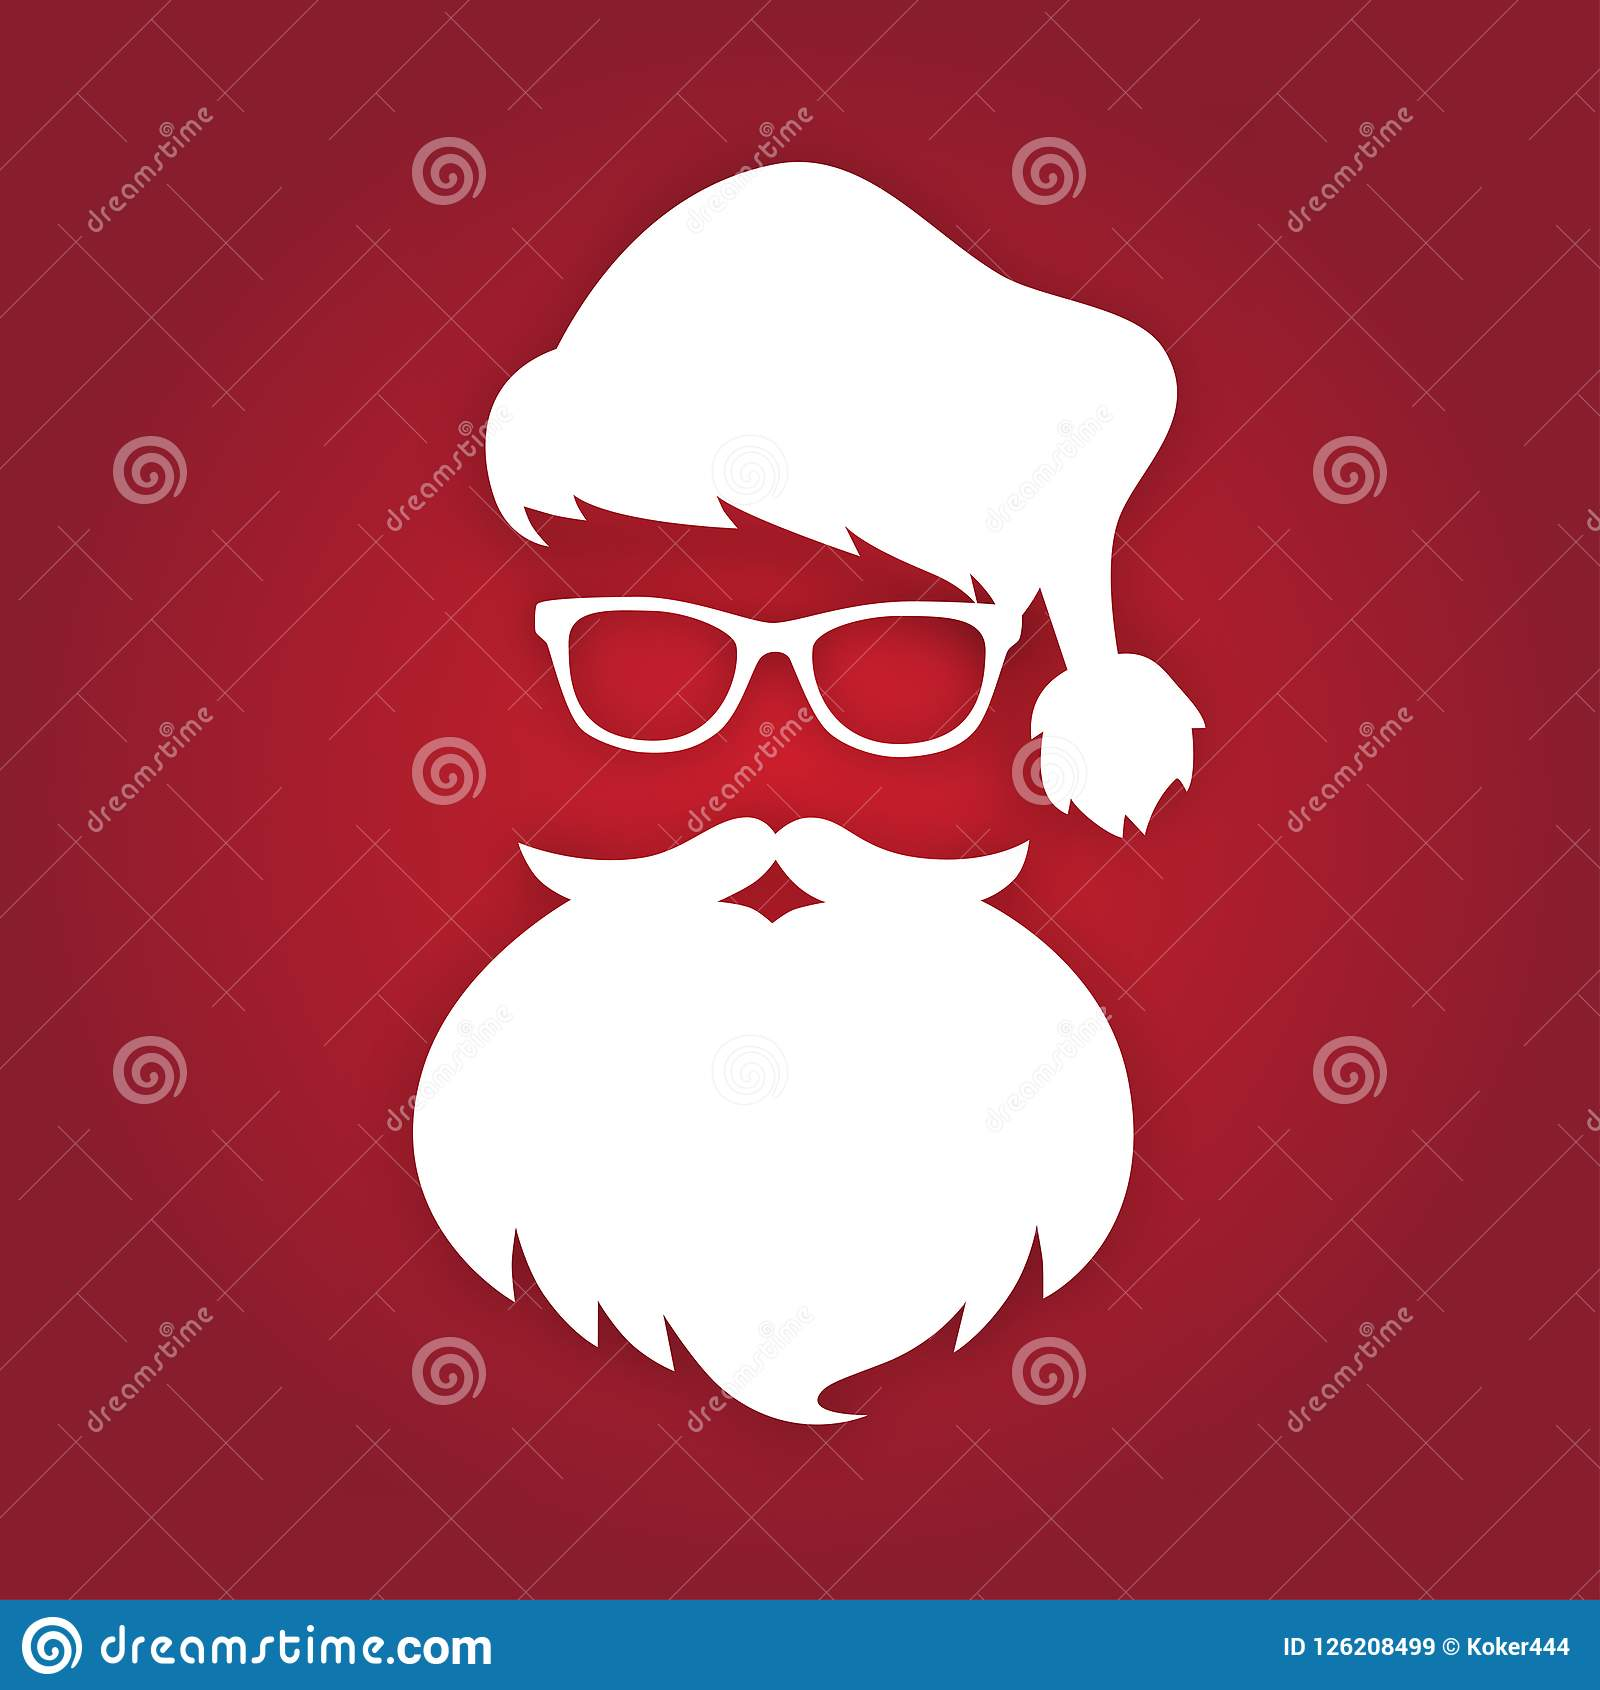 e2122b502ef Santa Claus With Beard And Glasses. White Silhouette. Vector ...